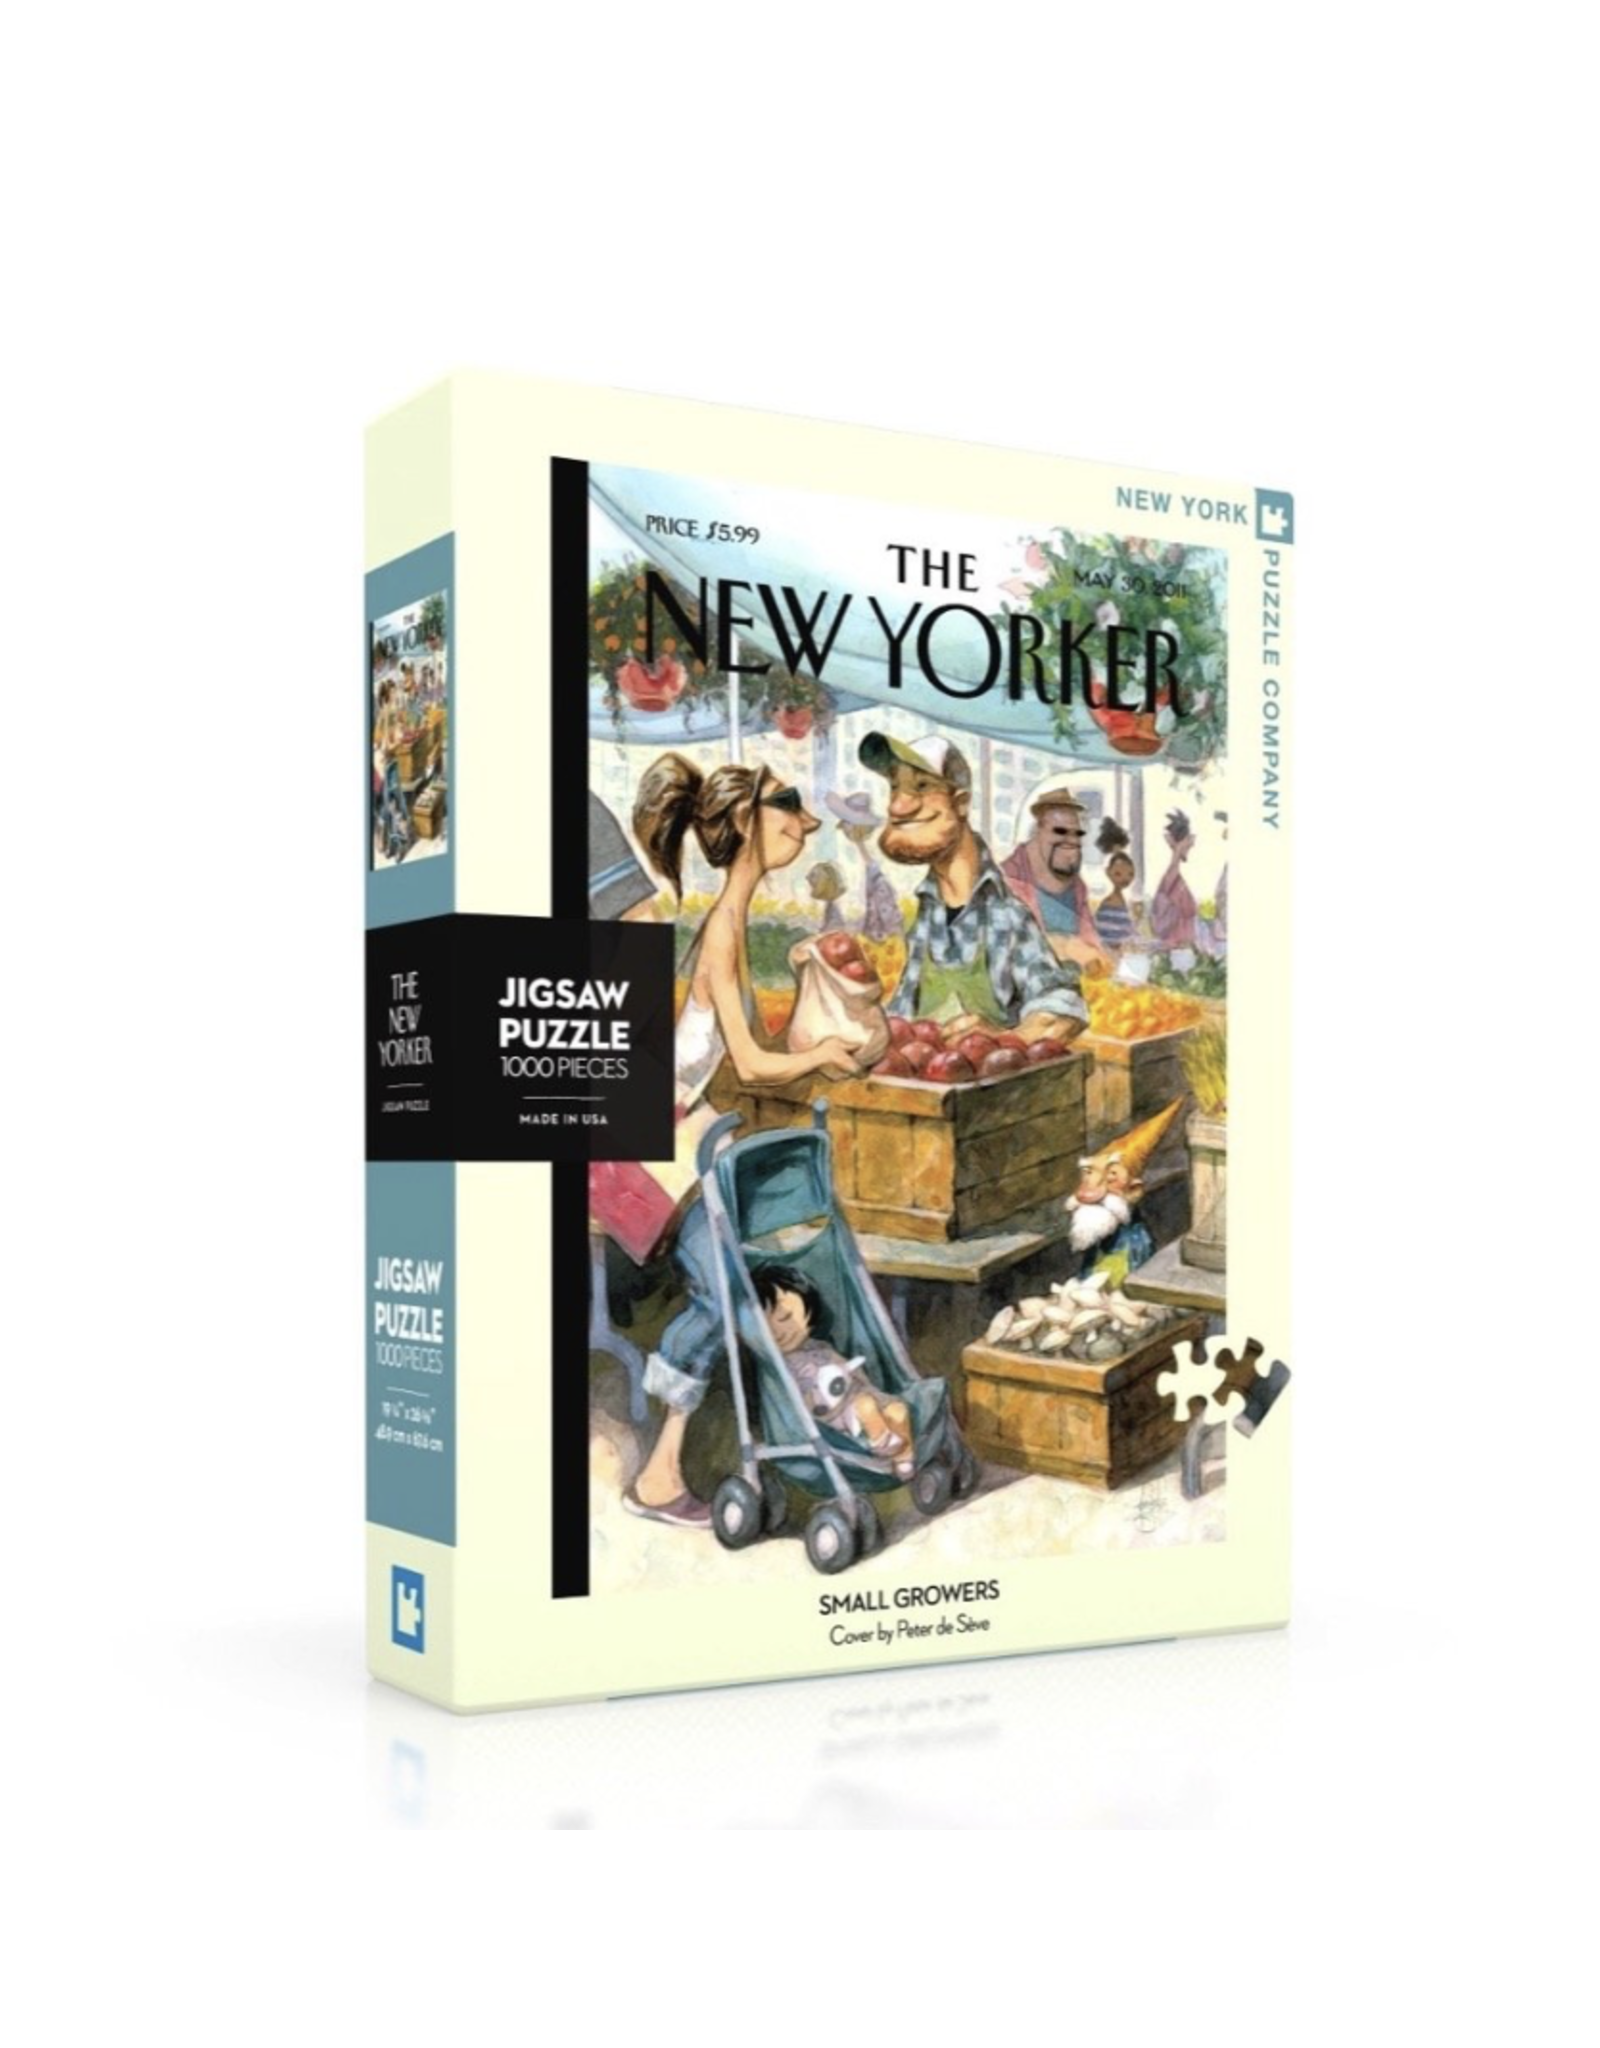 New Yorker Puzzle - Small Growers